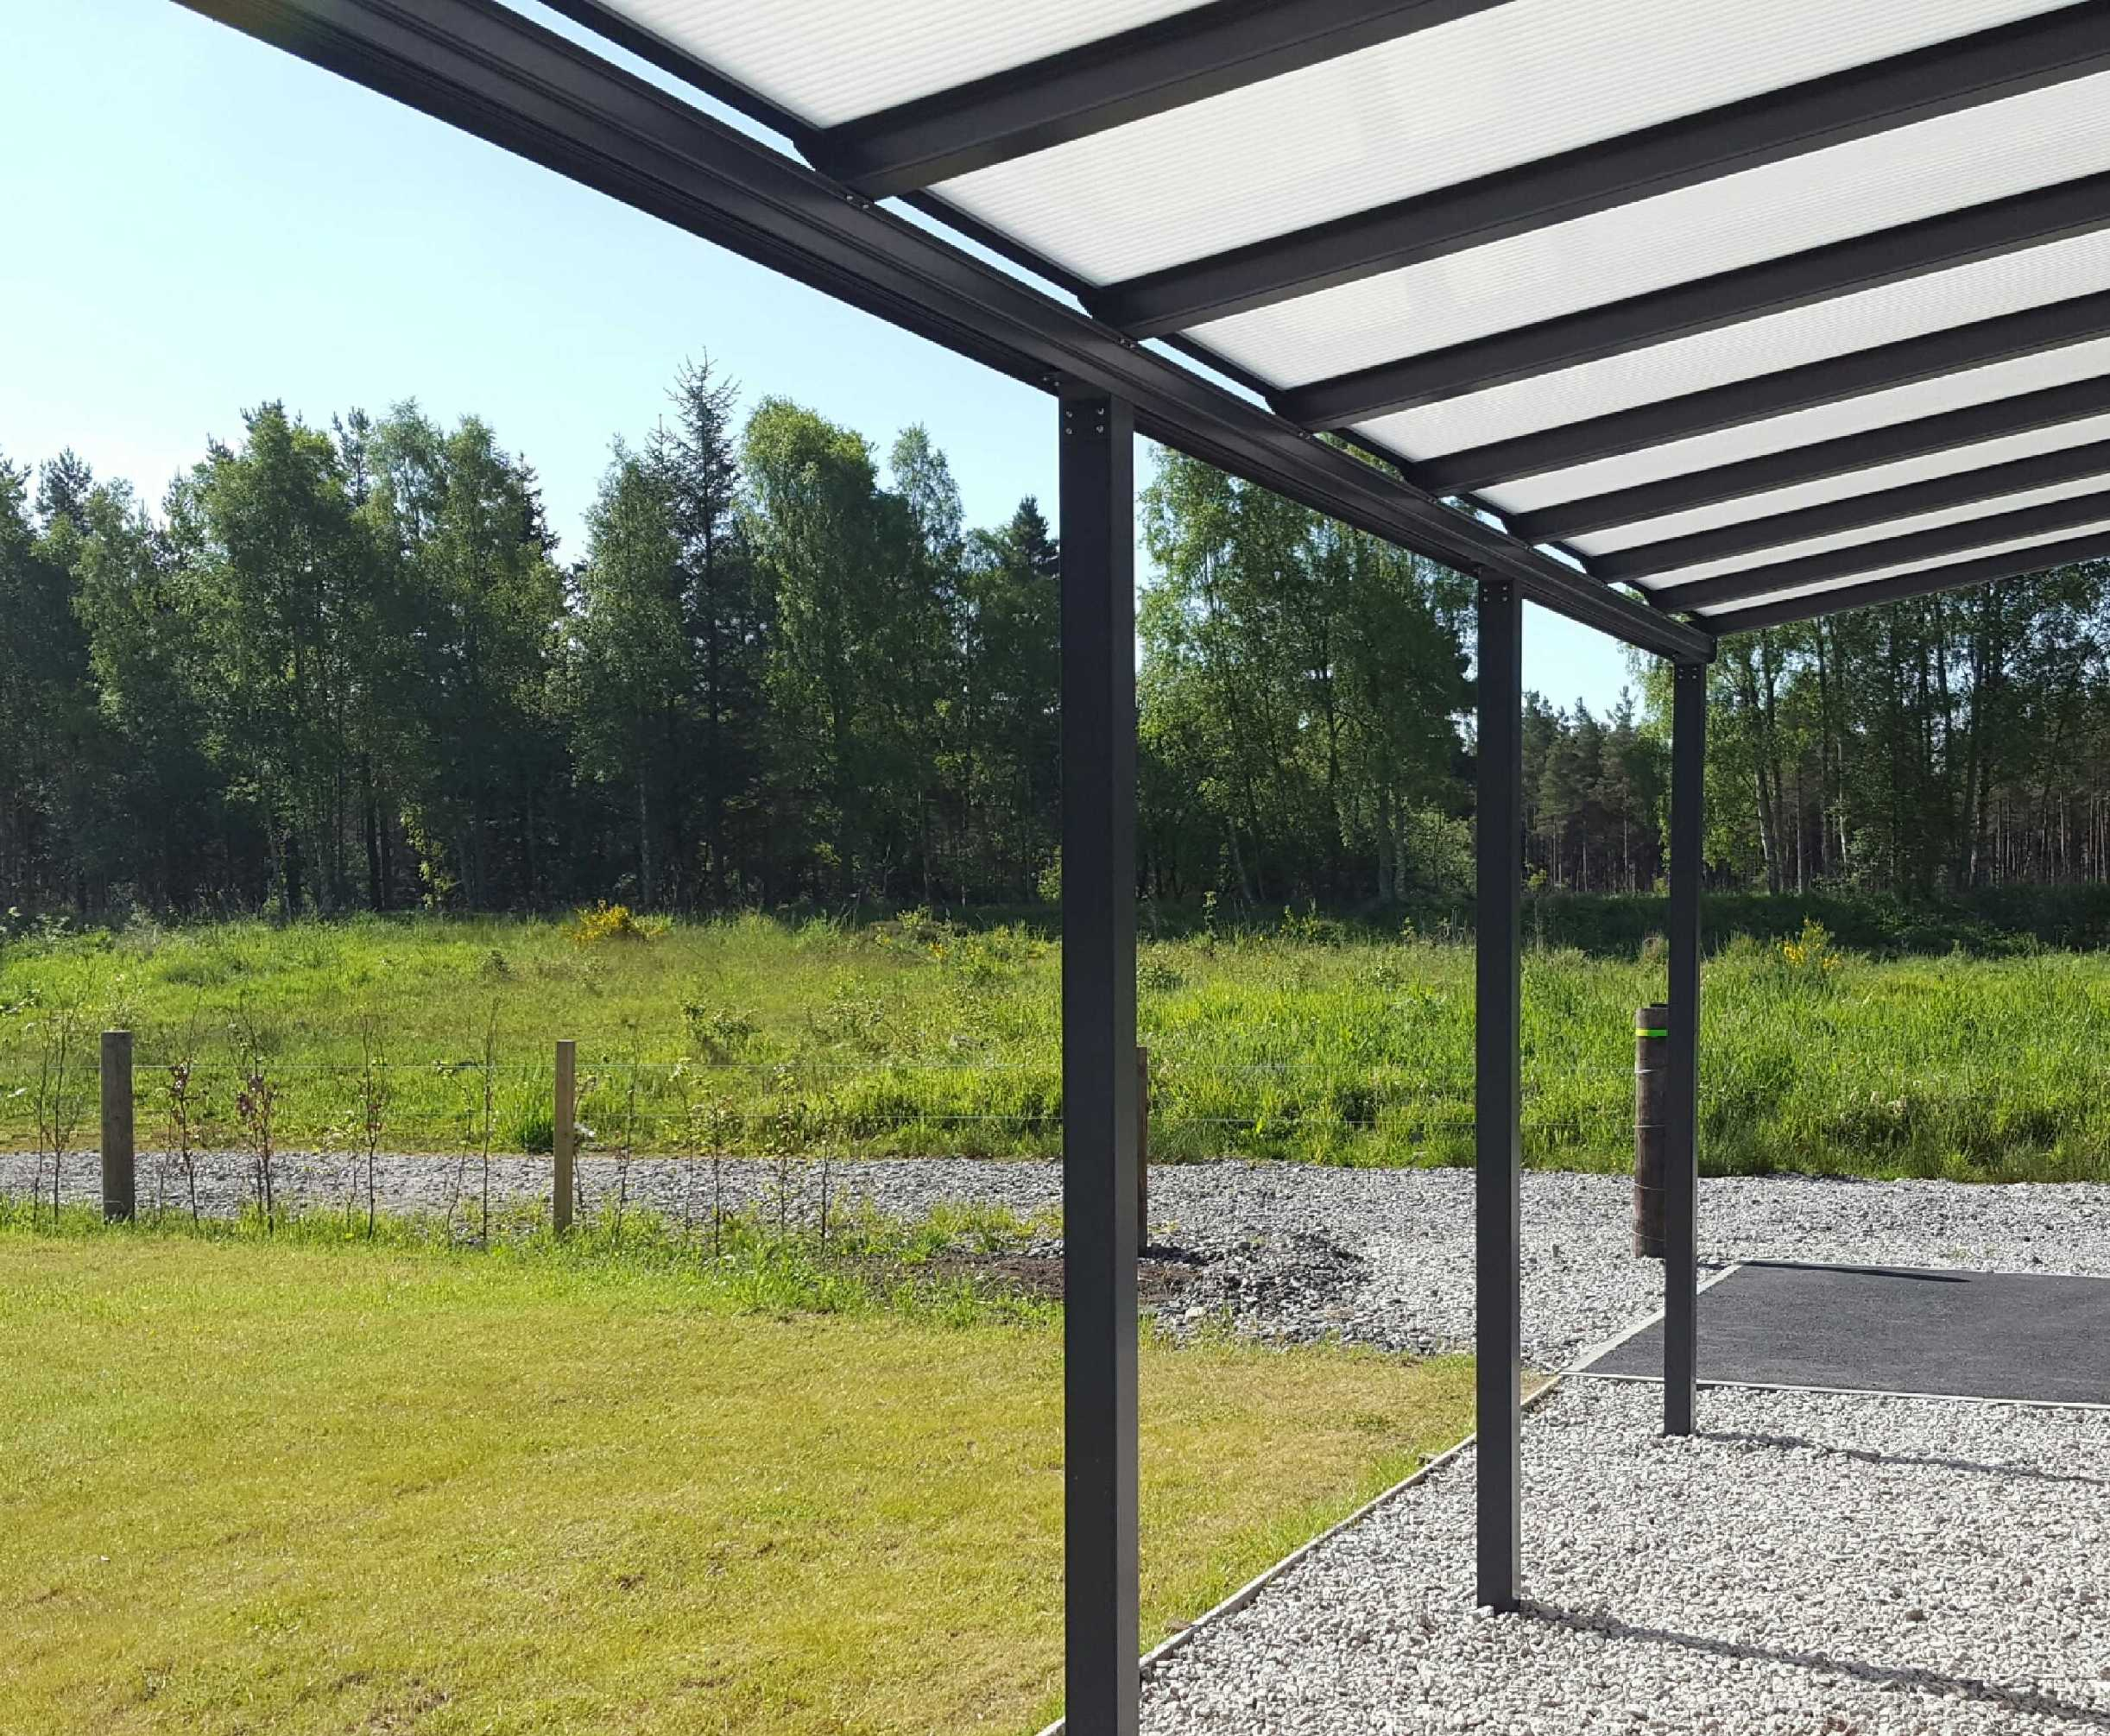 Omega Smart Lean-To Canopy, Anthracite Grey, UNGLAZED for 6mm Glazing - 9.1m (W) x 2.0m (P), (5) Supporting Posts